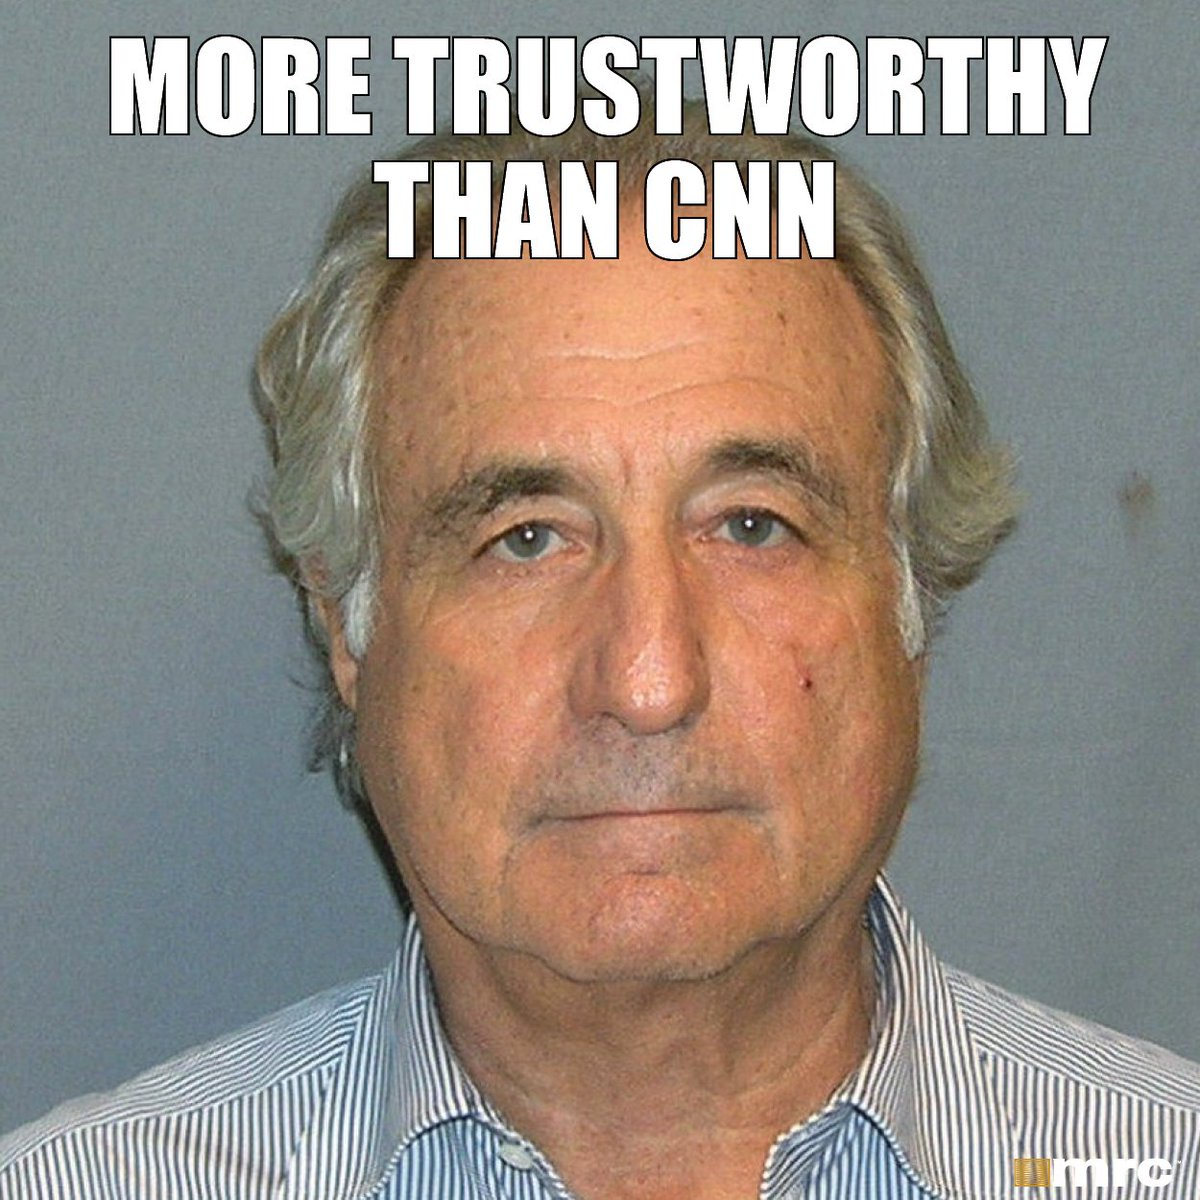 unethical leader madoff A good ethical leader clearly communicates to employees what behavior is unacceptable toward coworkers, customers and shareholders.